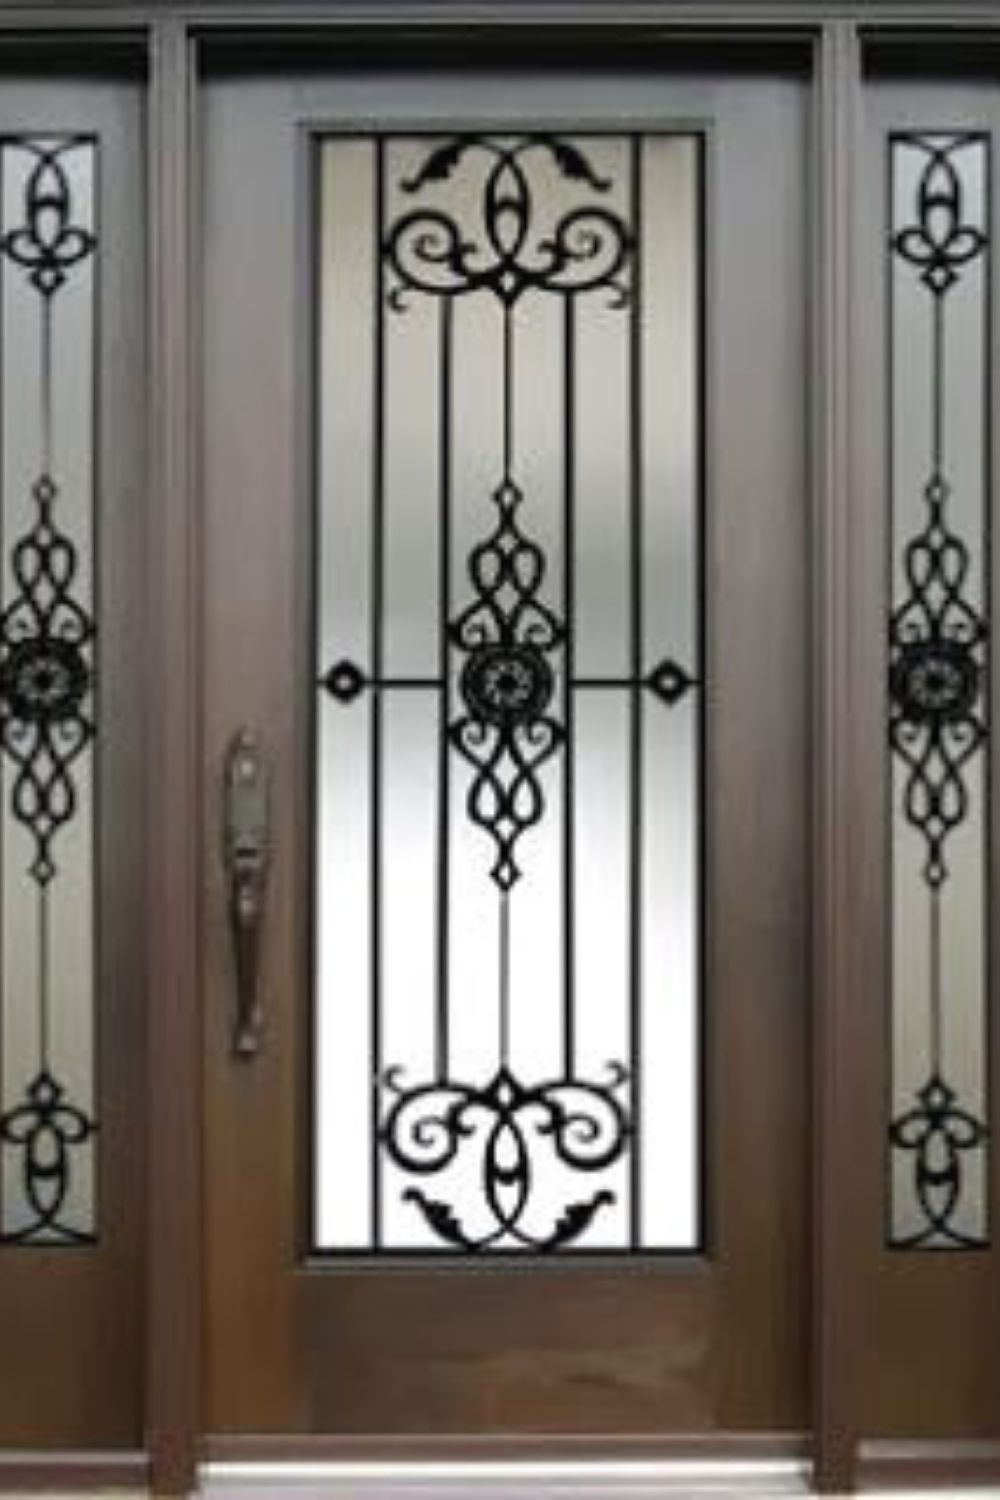 Modern Iron Doors Ideas To Make Your Entrance Look Beautiful